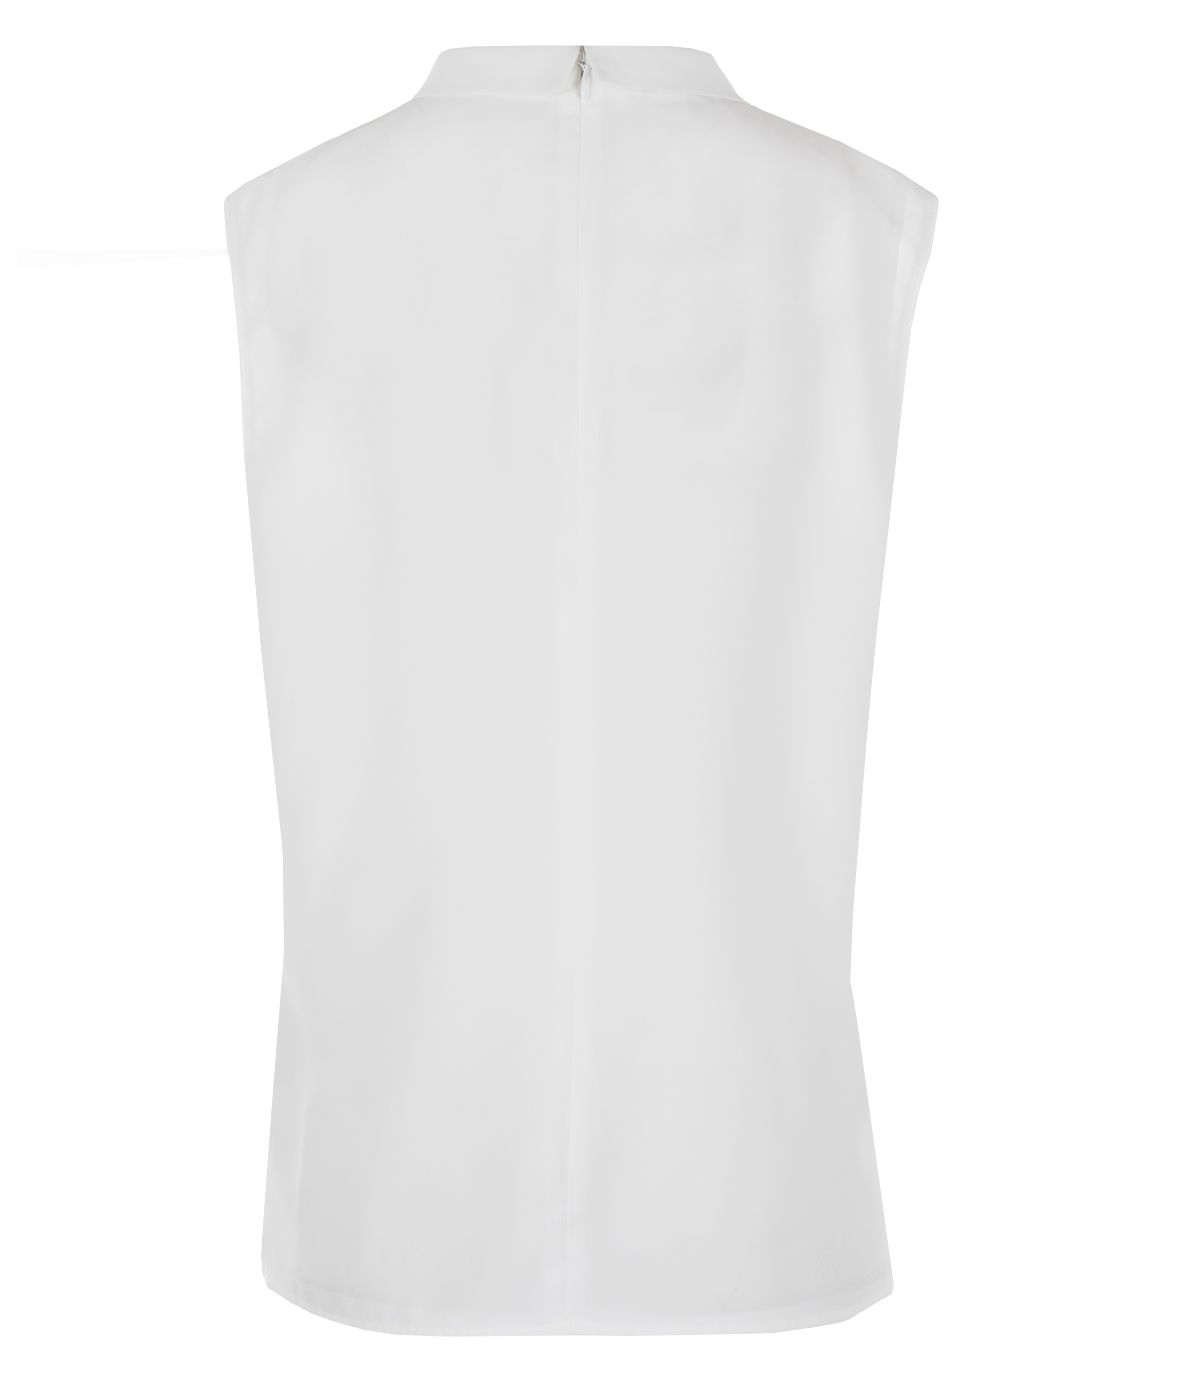 Sleeveless blouse with stand-up collar 1